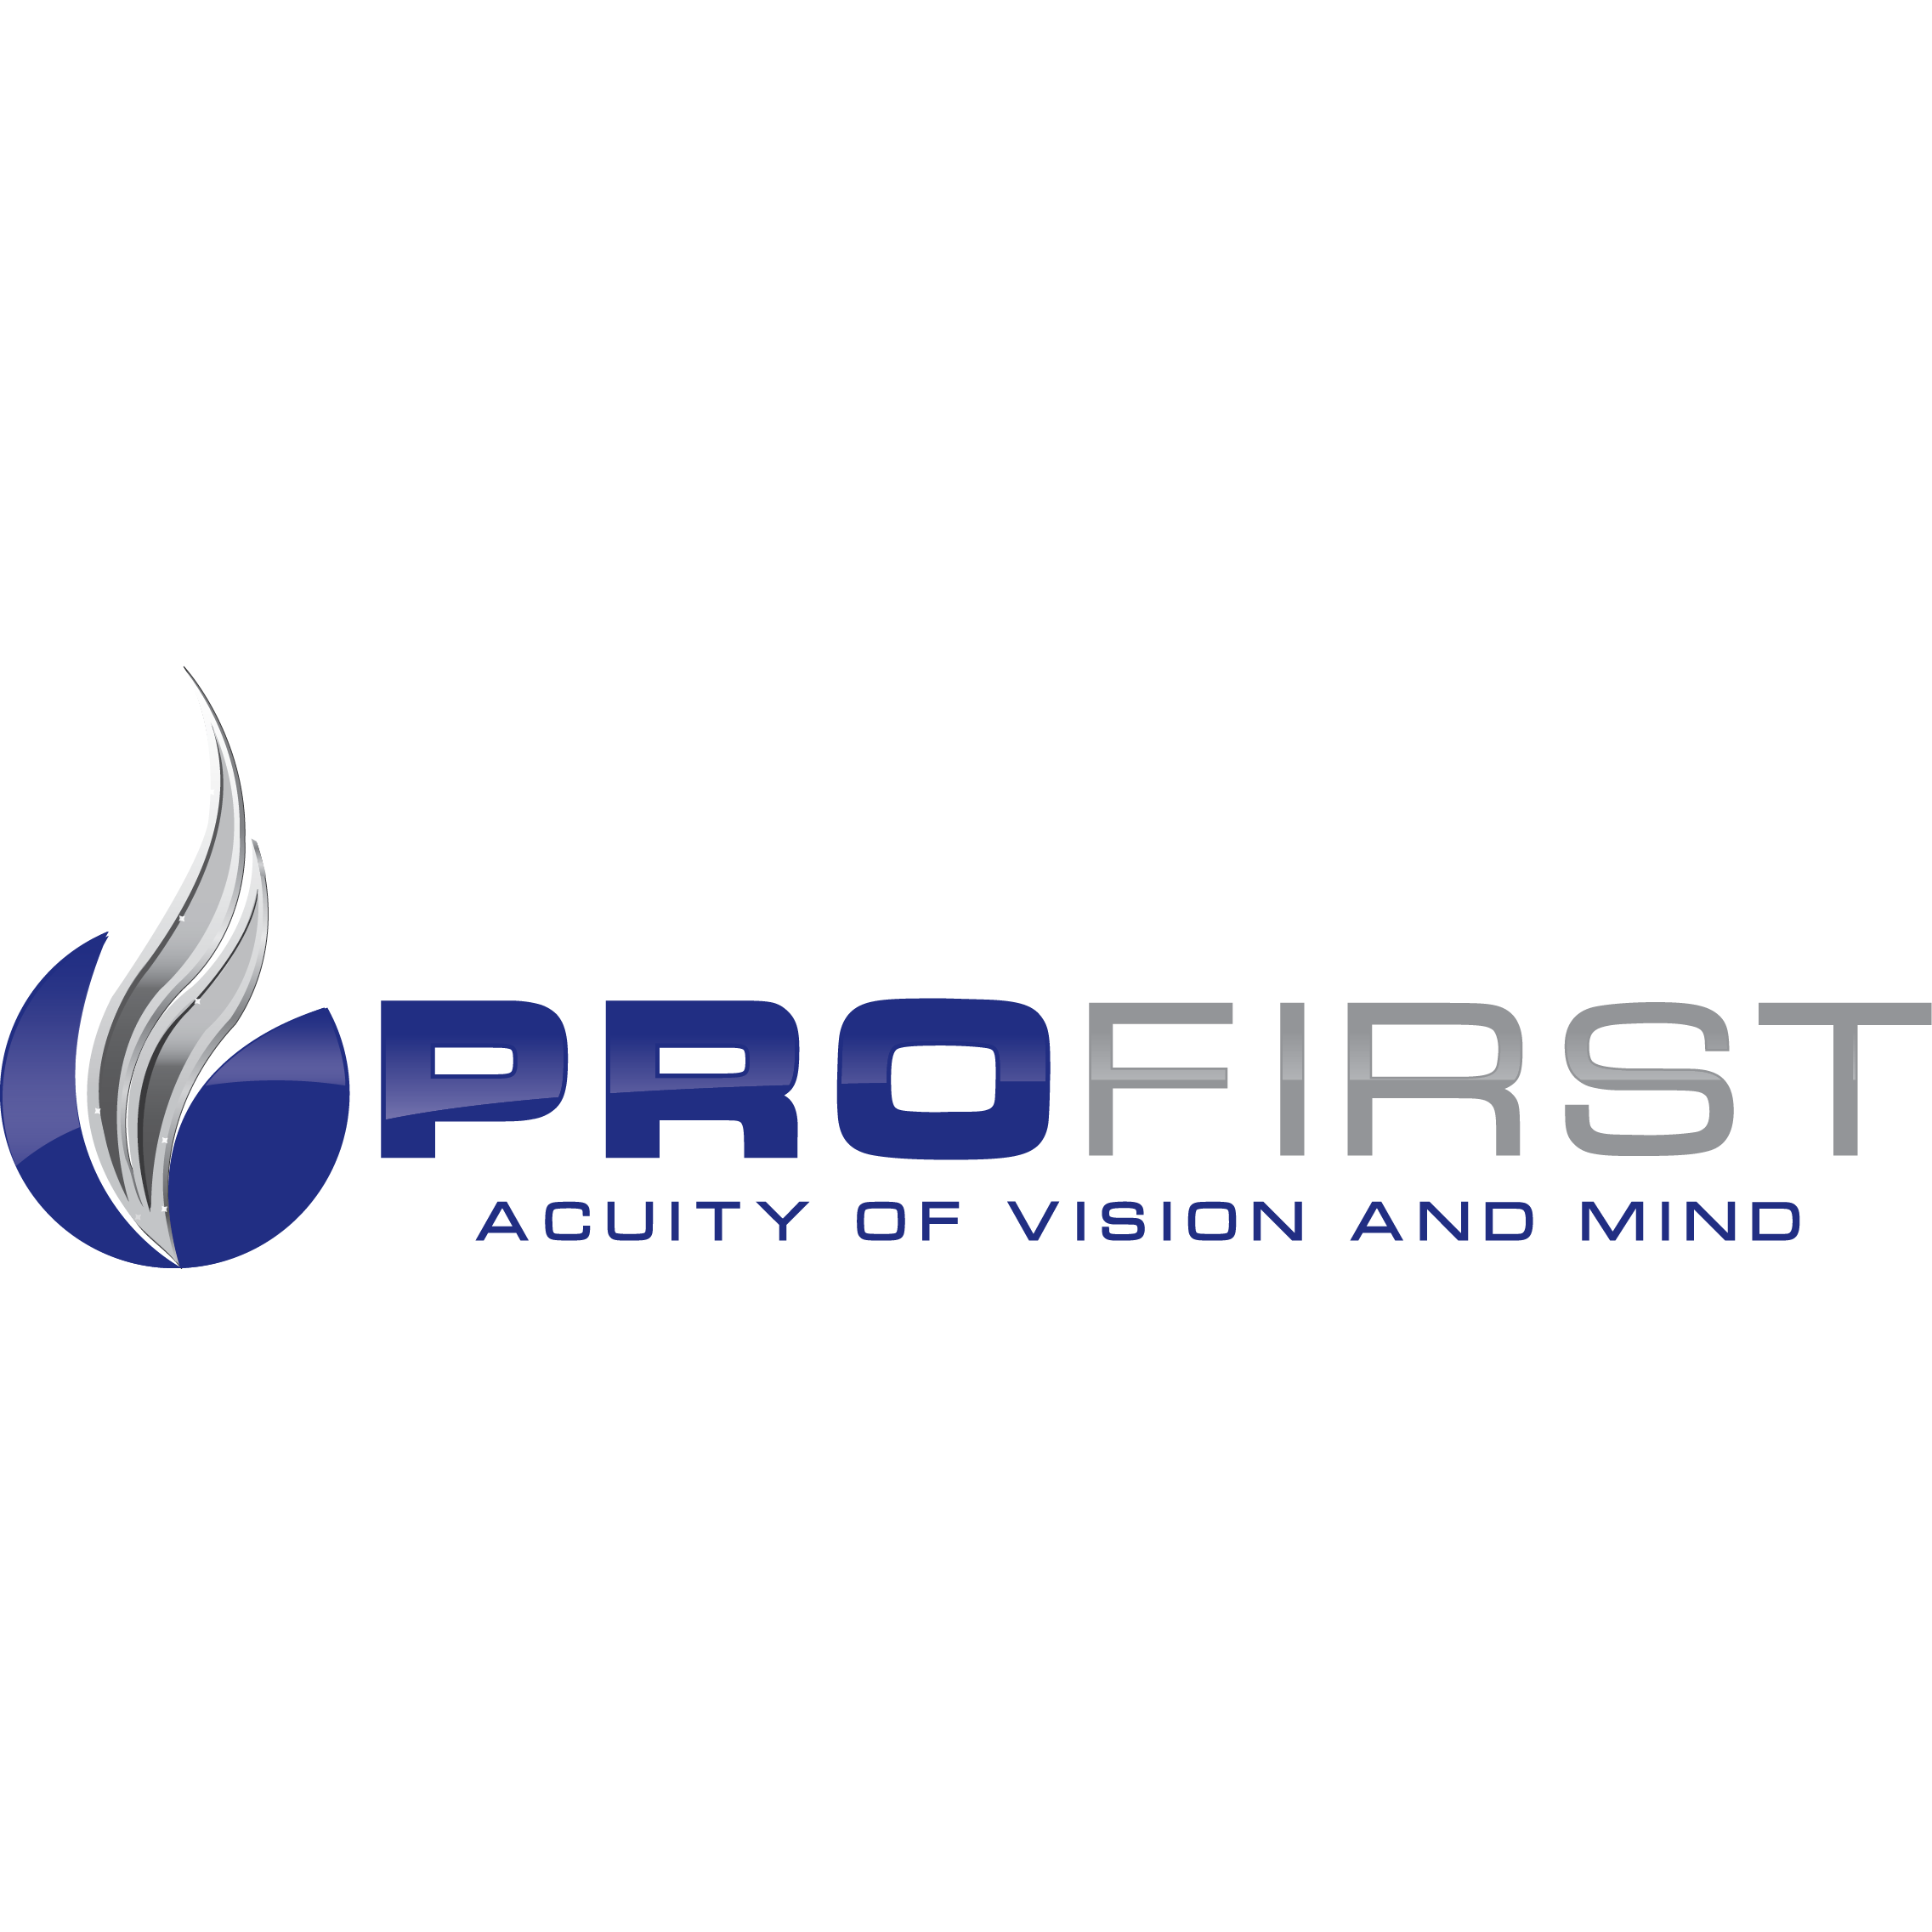 Towson Woods Apartments: Profirst, Inc., Cockeysville Maryland (MD)